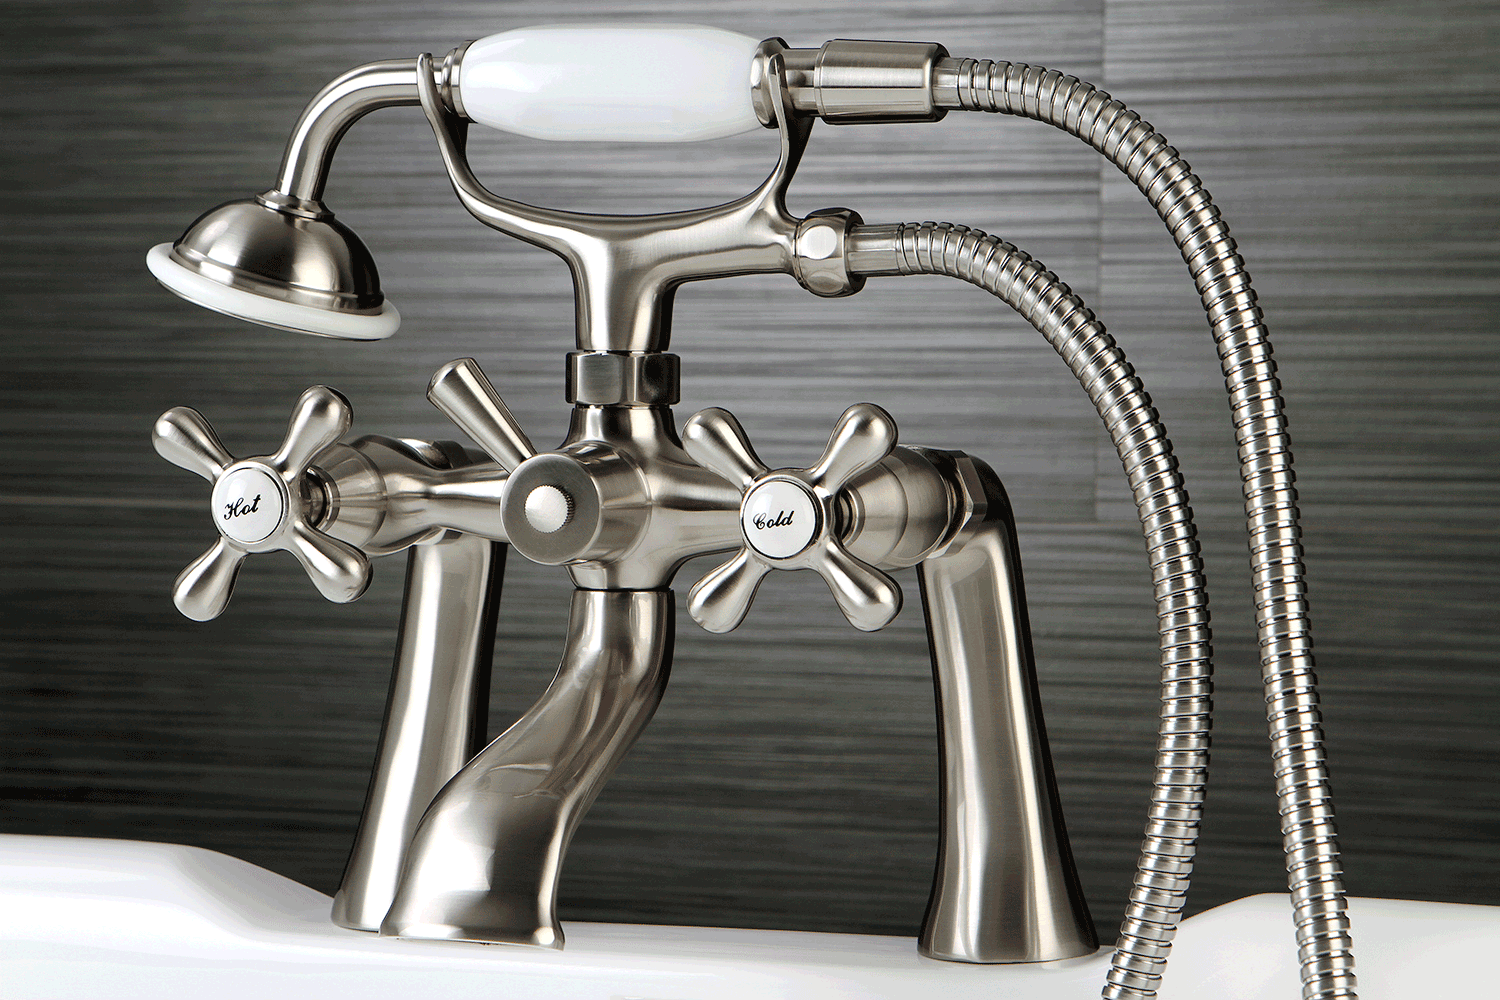 Kingston Brass KS268C Victorian 7-Inch Deck Mount Tub and Shower Faucet, Polished Chrome - Clawfoot Tub - Amazon.com